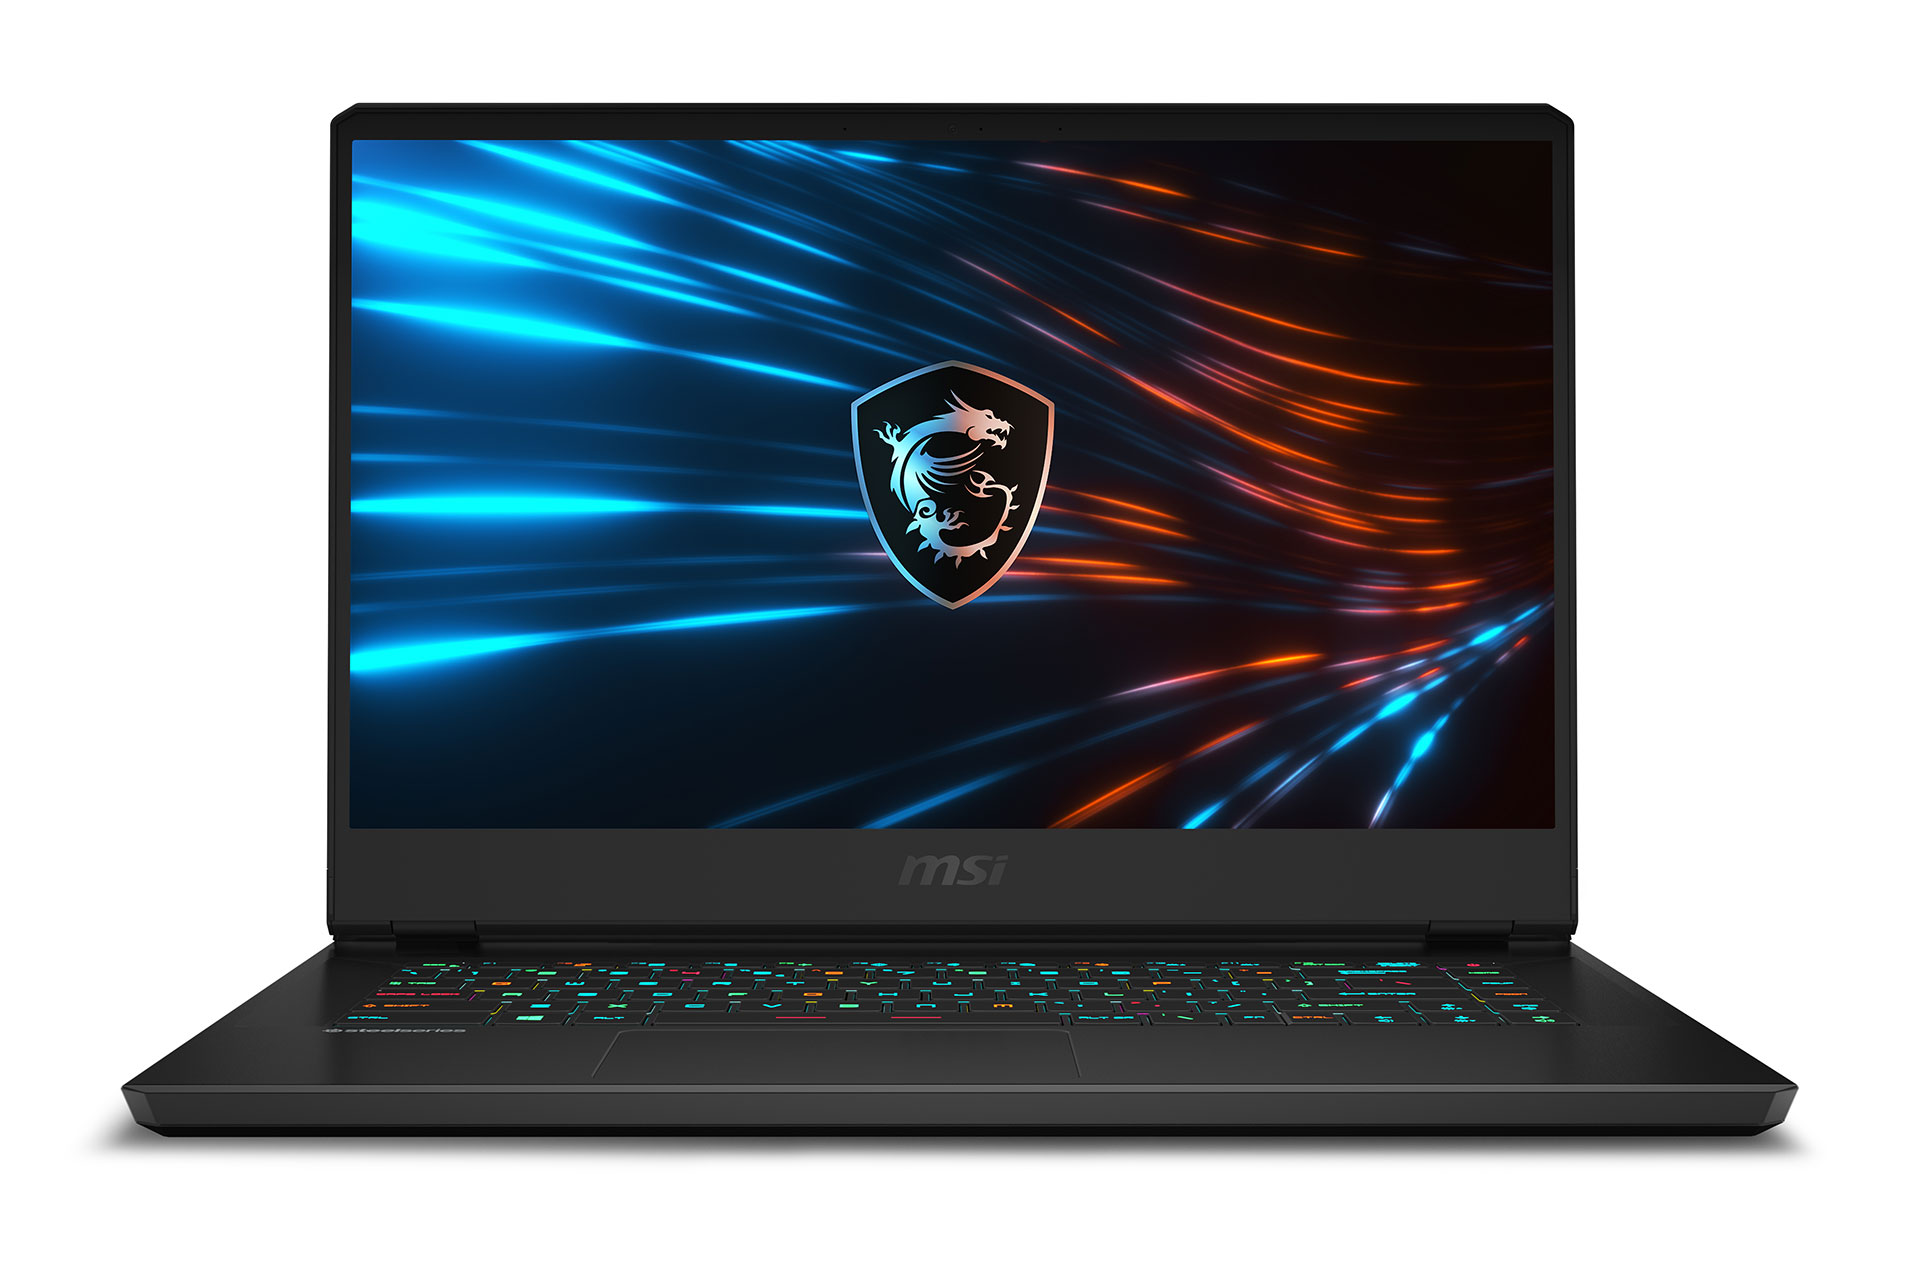 2021 MSI GP66 Leopard mainstream performance/gaming laptop